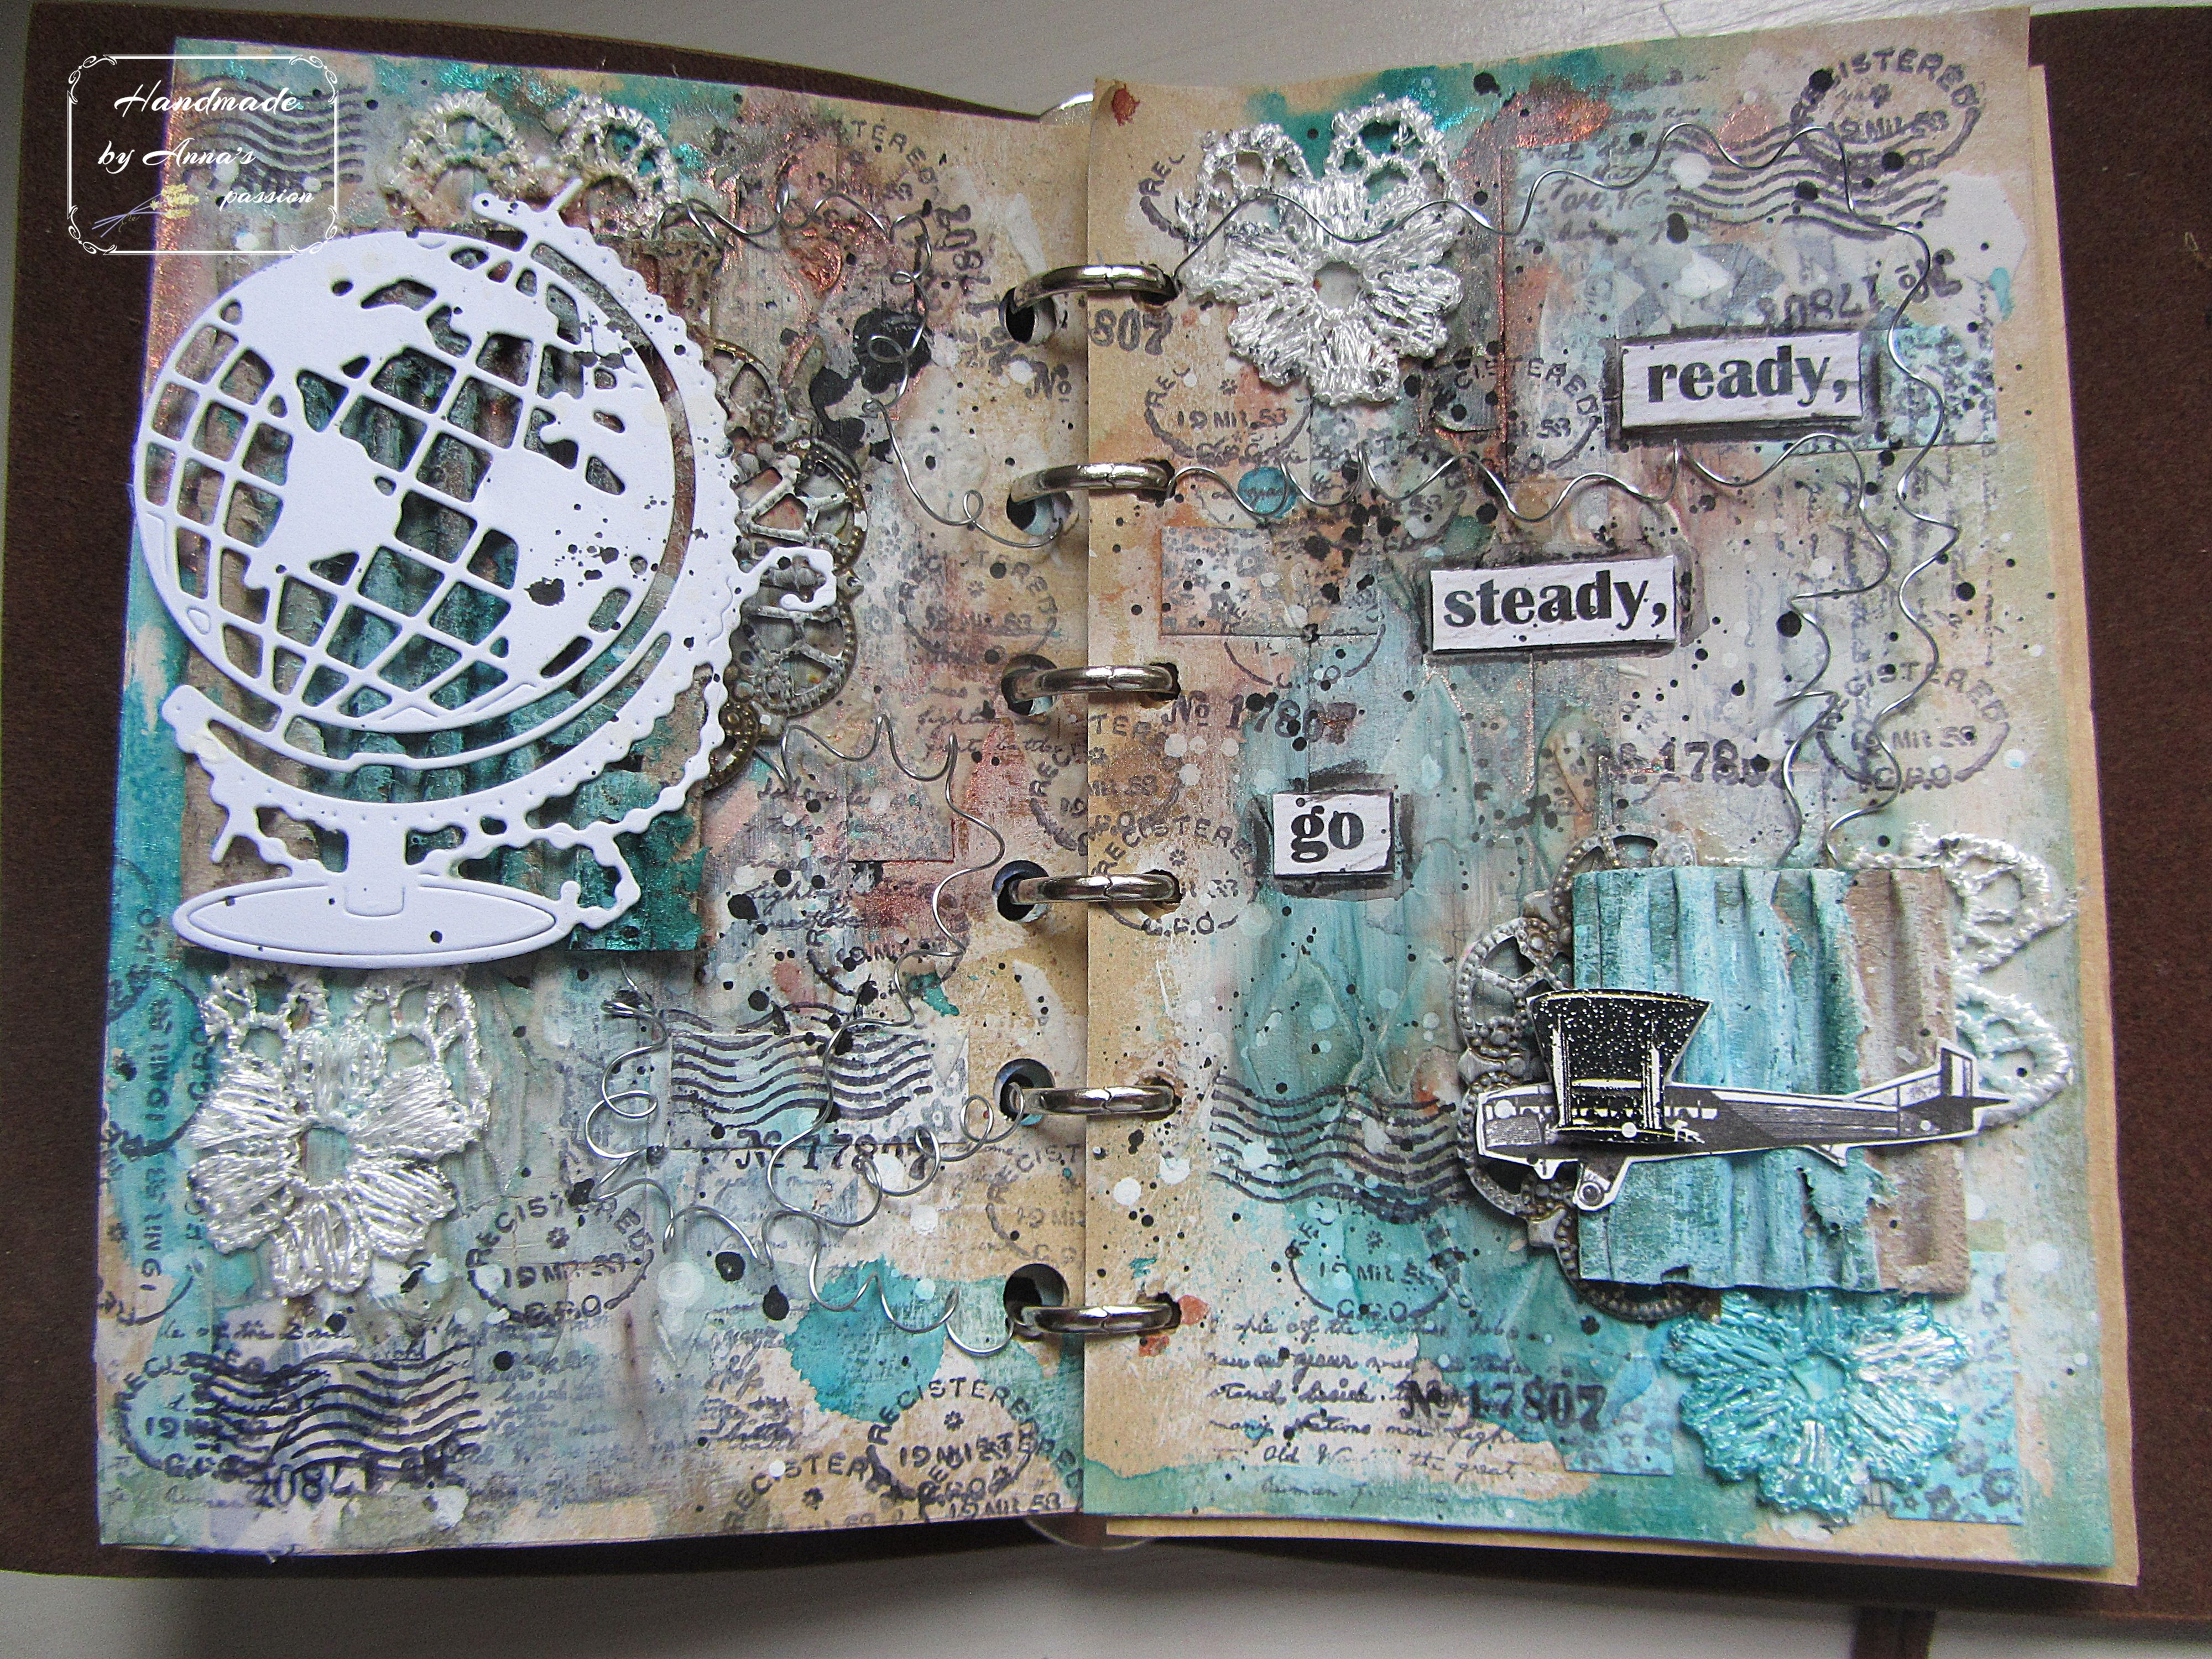 Ready , steady , go ...Art Journal page  Inspiration with using wires from #agabaraniak #mixedmedia #mixedmediaart #artjournalpage #washitape #paperstrips #gesso #texturepaste #stencil #thecrafterworkshop #tcwstencil #tcwstencillove #lindys #lindysstampgang #lindyssprays #lace #cardboard #metalembellishments #floralrwire #7dotsstudio #sticker #travelstamps #clearstamps #ranger #archivalink #diecutglobe #plane #planesticker #whiteacrylicpaint #blackacrylicpaint #splashes #tackyglue #inktensepenci